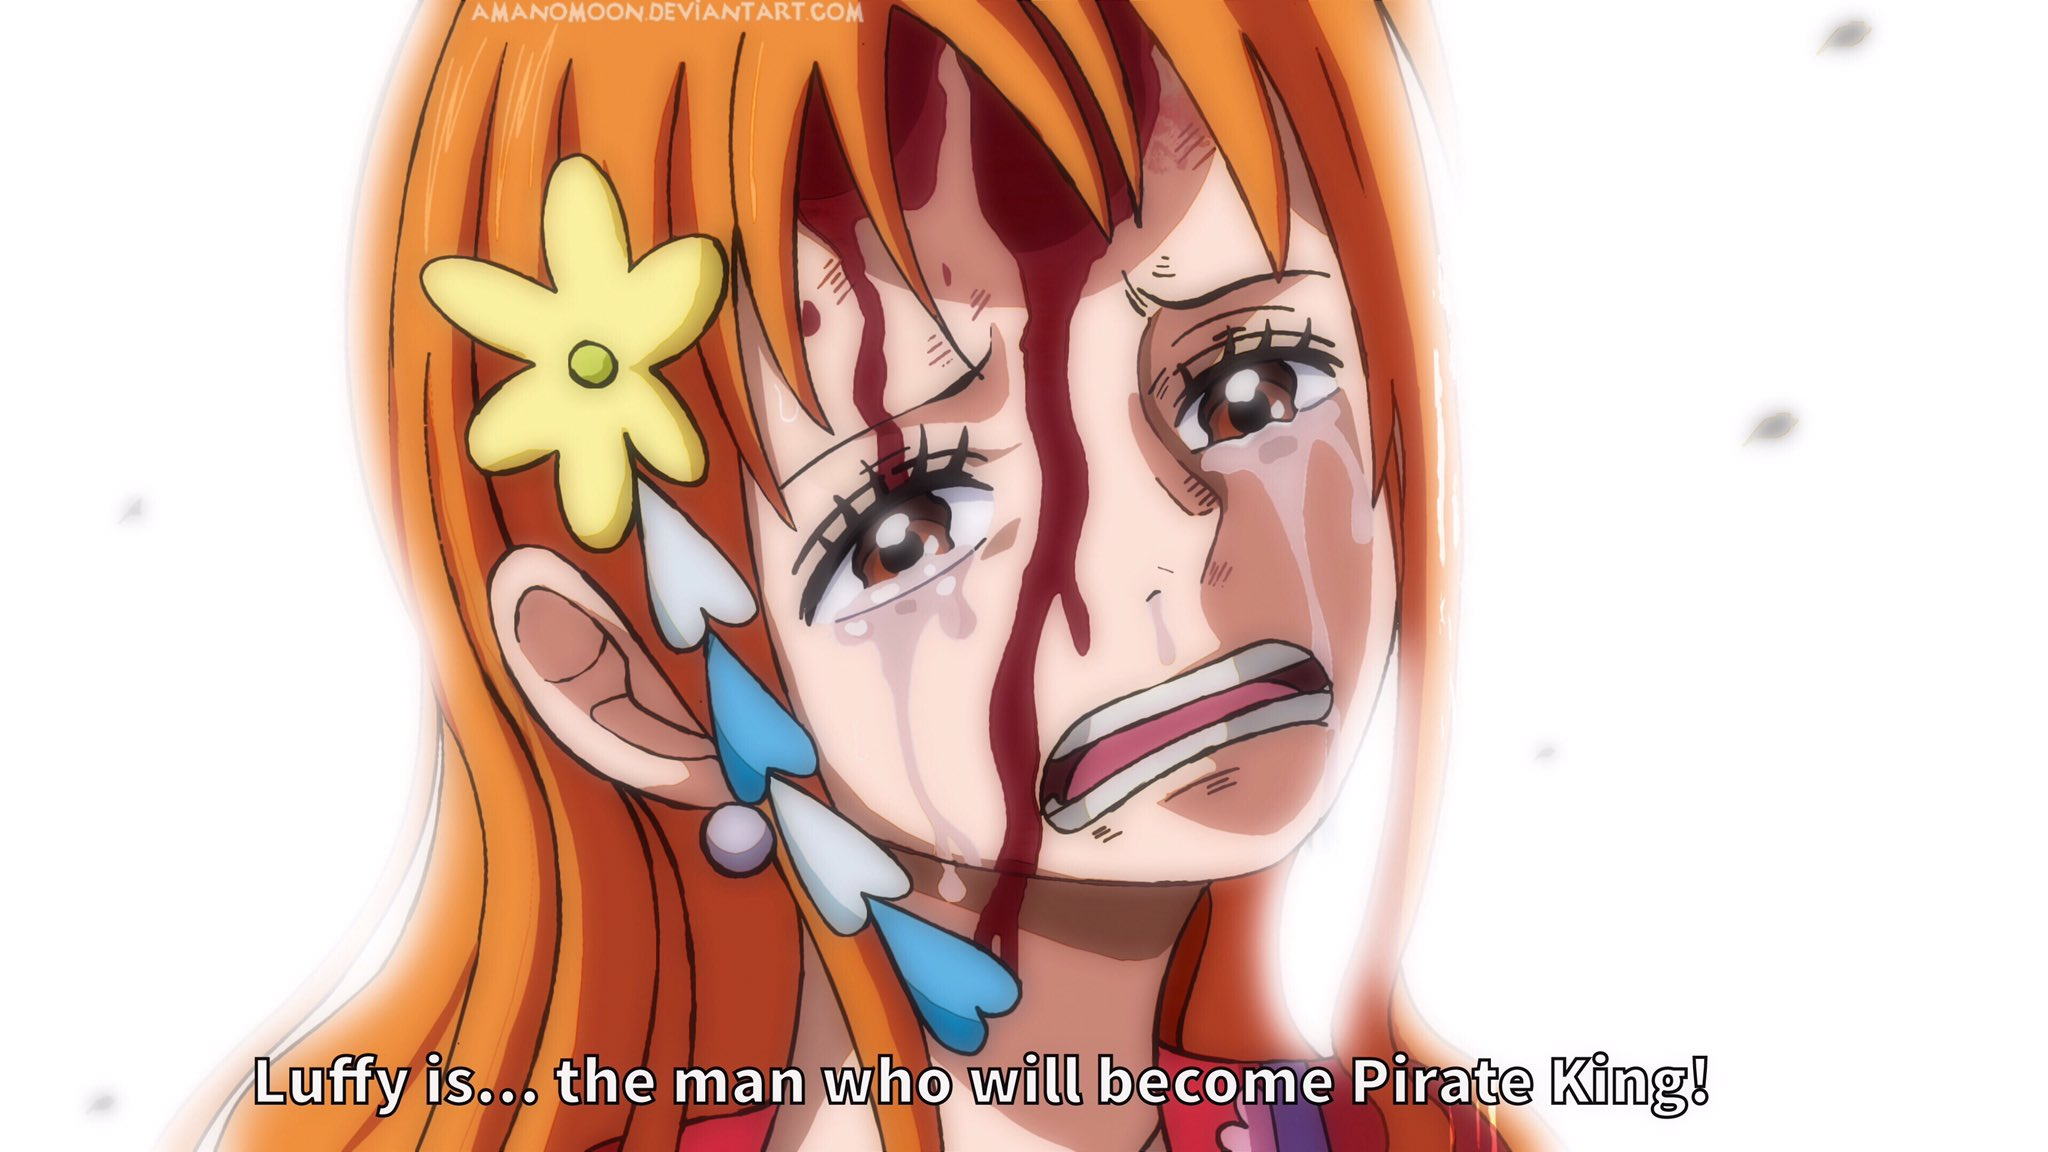 One Piece Chapter 995 Nami Crying Luffy Anime Wano By Amanomoon On Deviantart